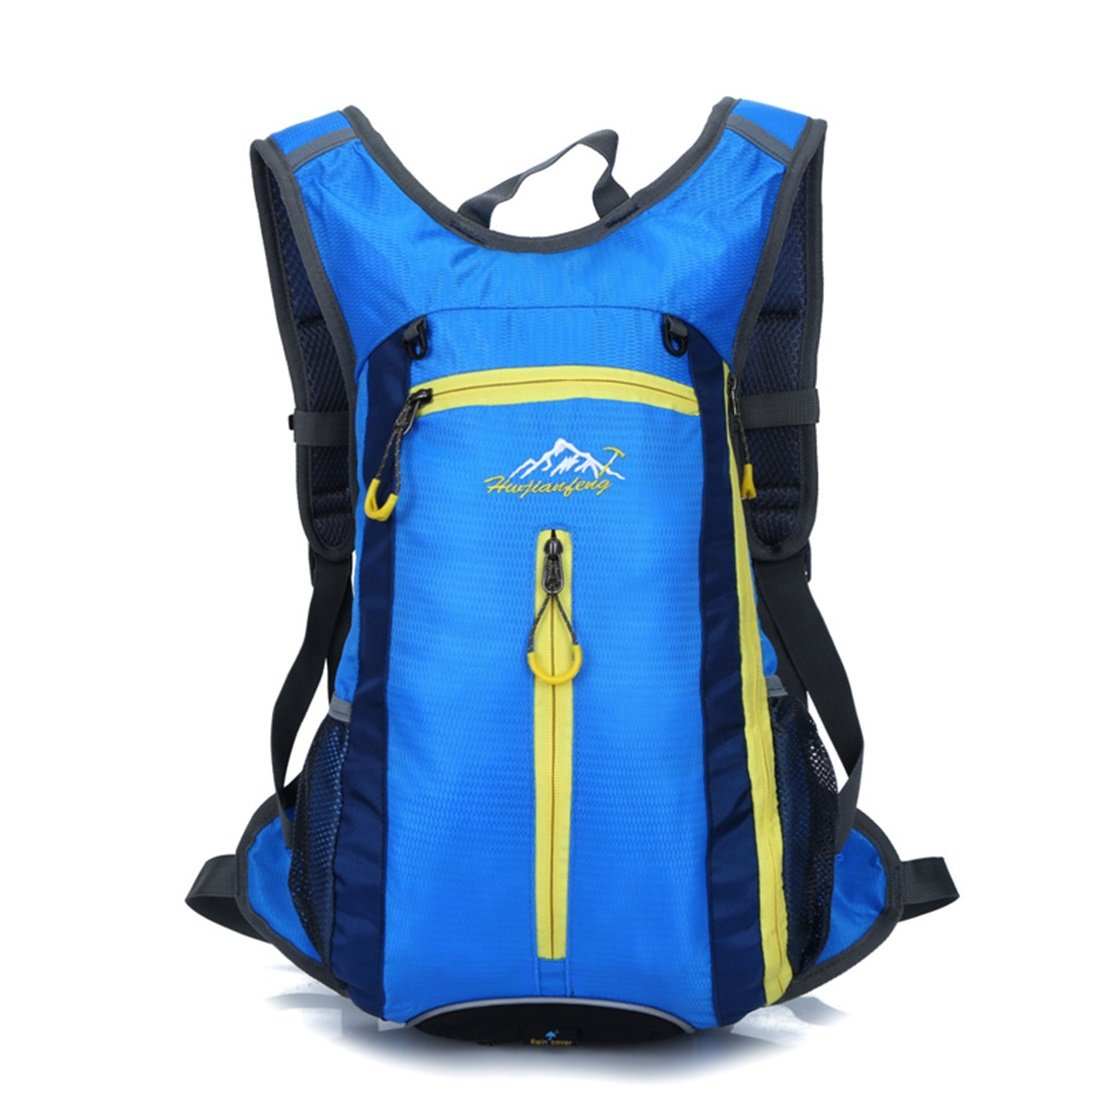 LJ Sports Bicycle Backpack With Breathable for Outdoor Running Climbing (jewelry Blue)